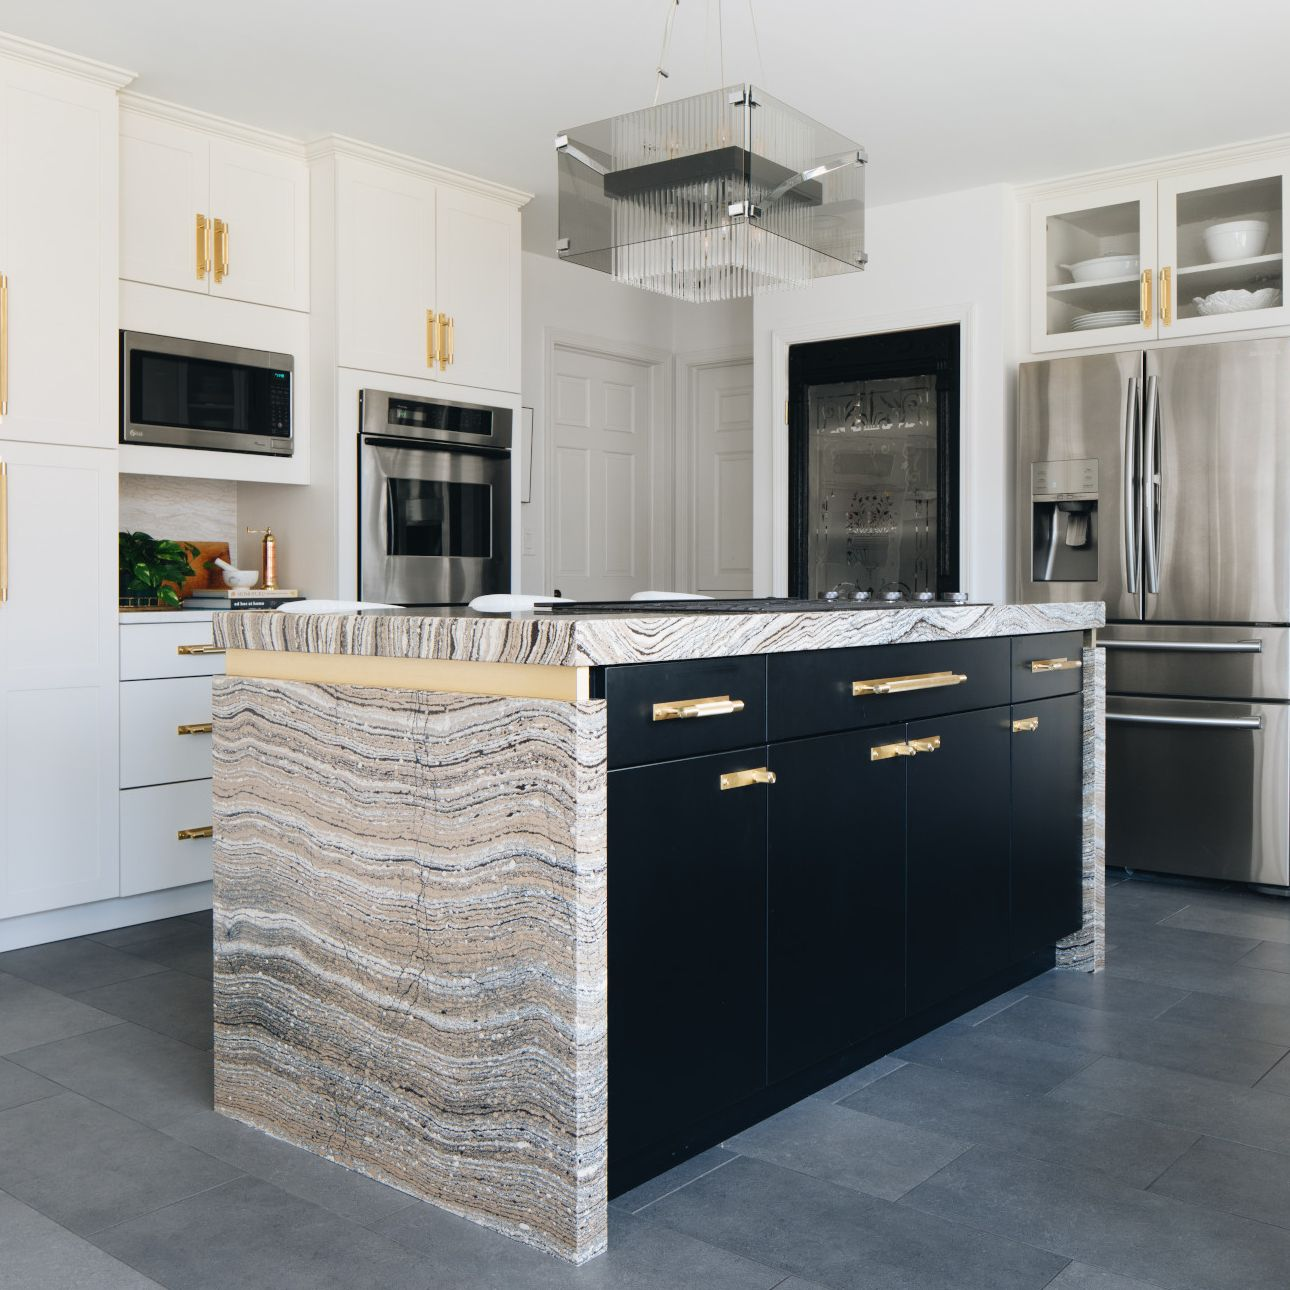 A view of a kitchen  Description automatically generated